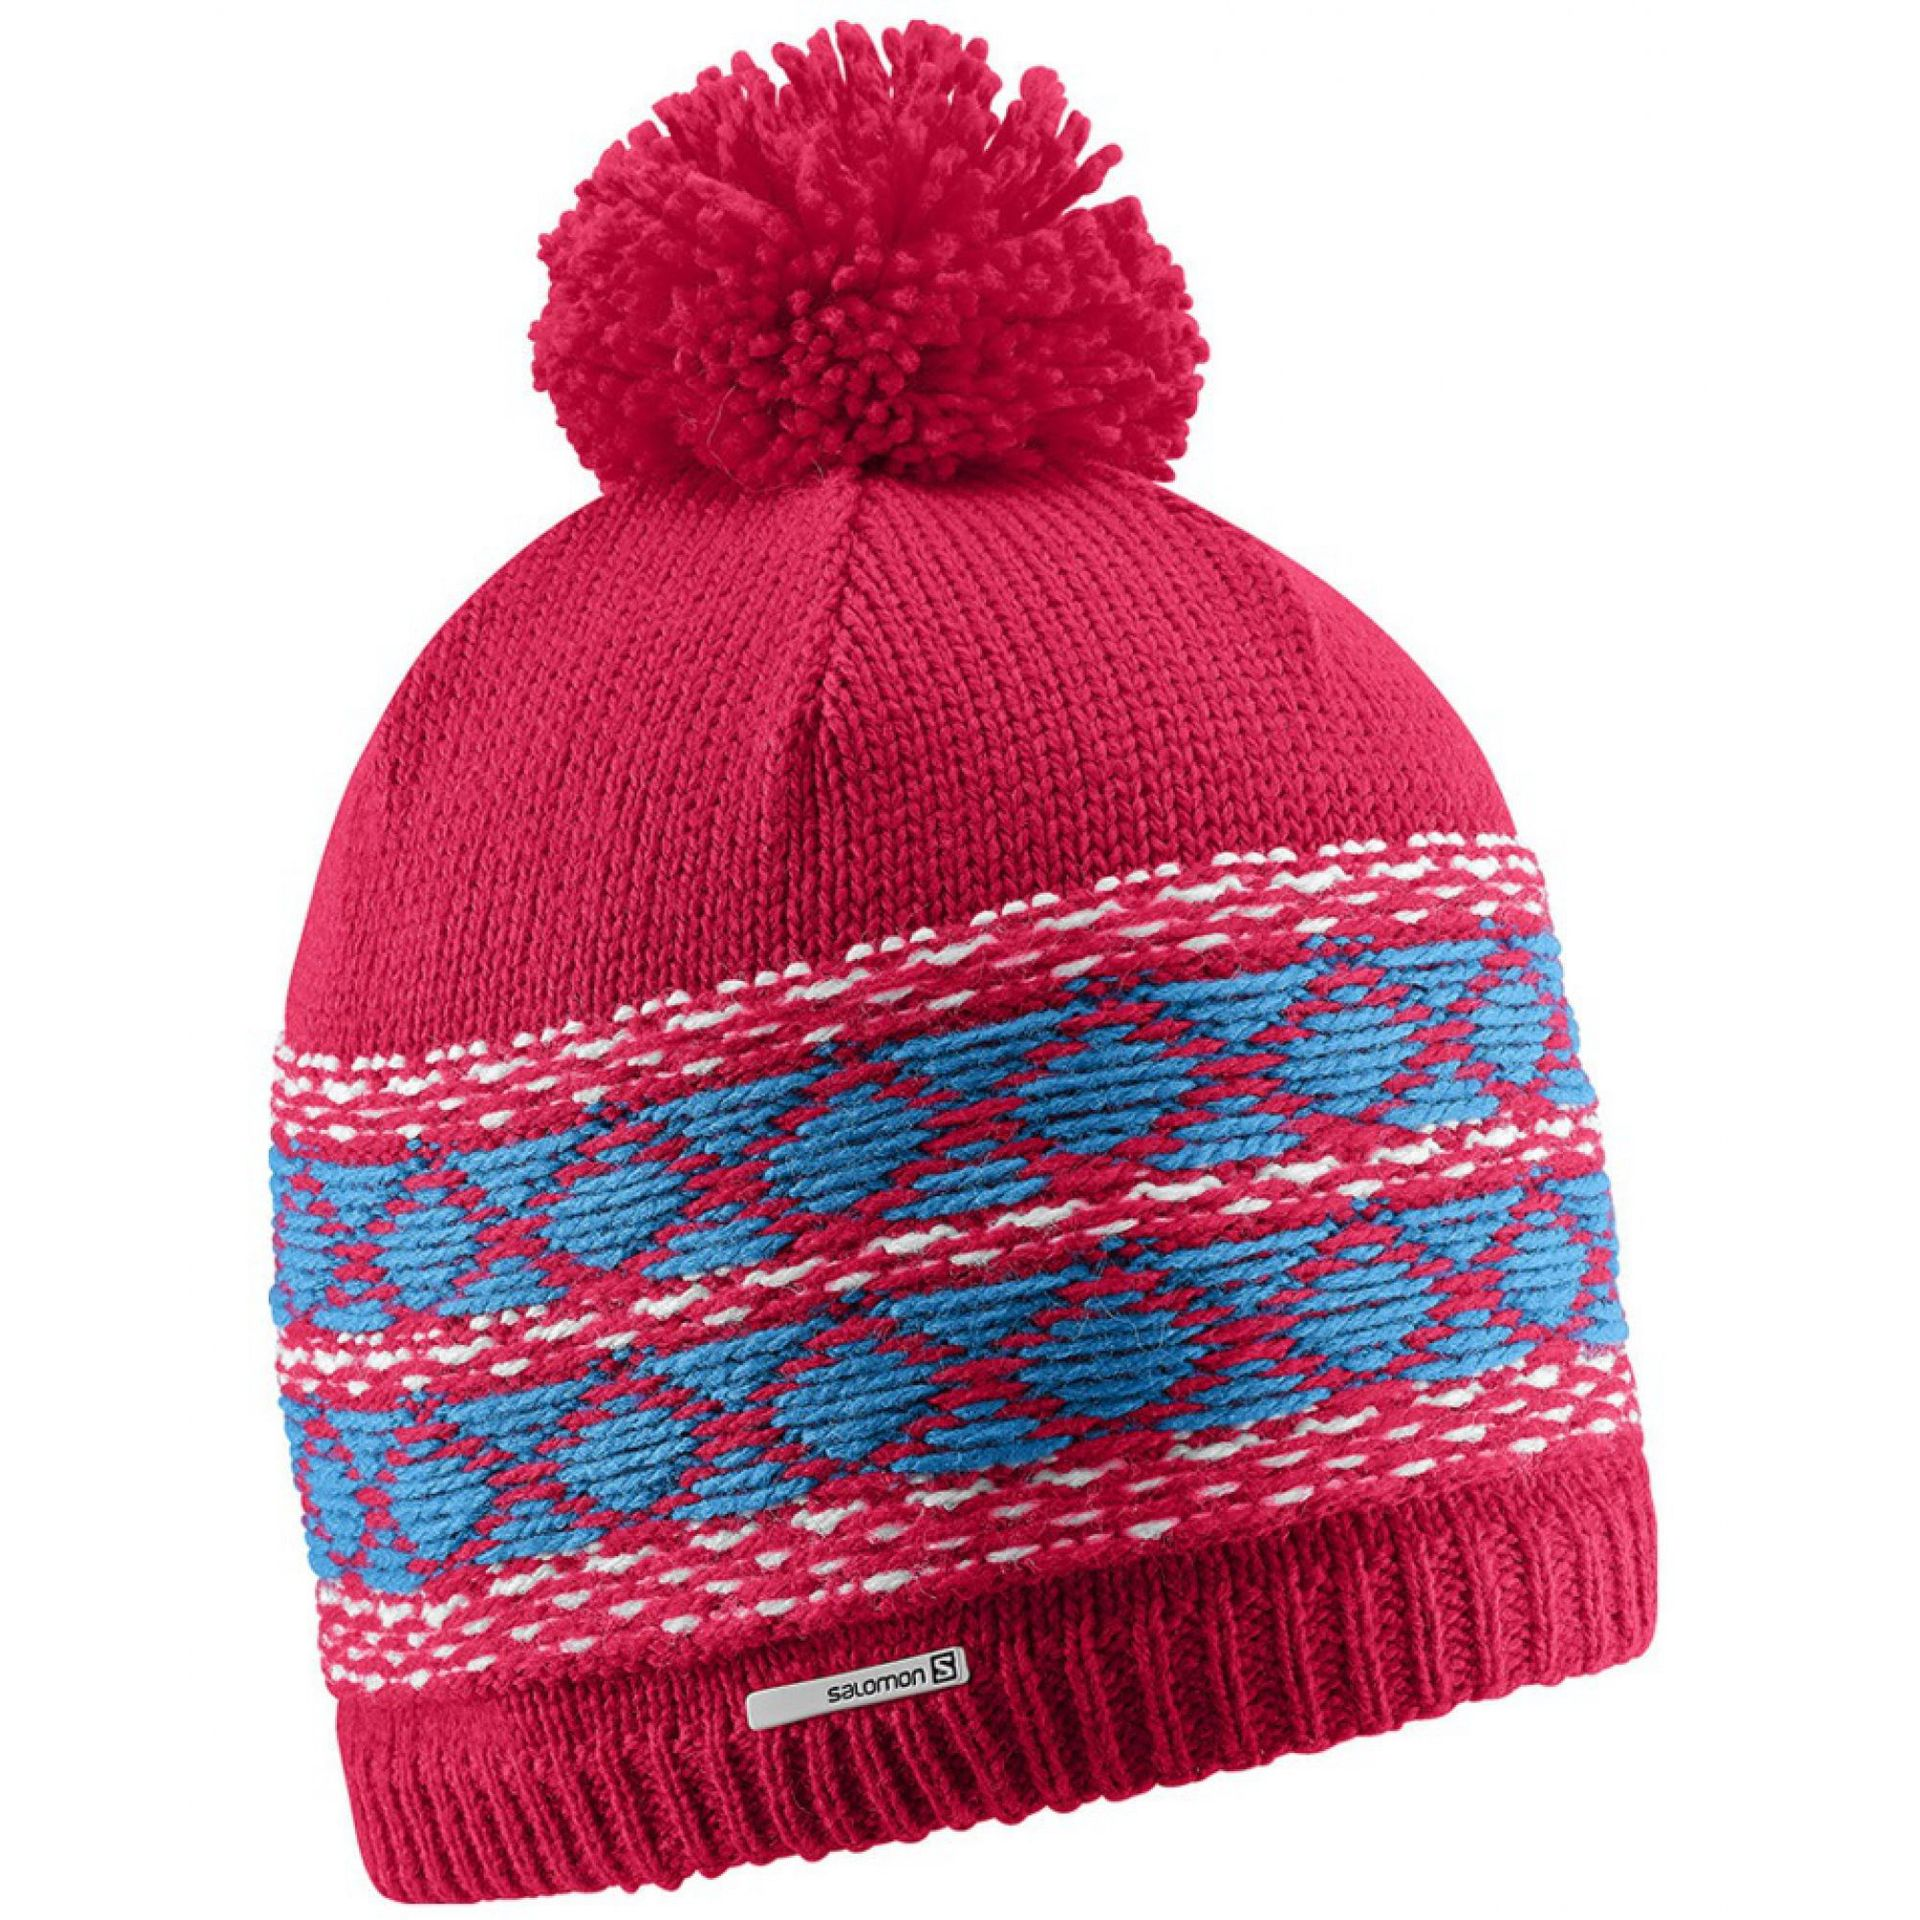 CZAPKA SALOMON KUBA BEANIE LOTUS PINK WHITE METHYL BLUE